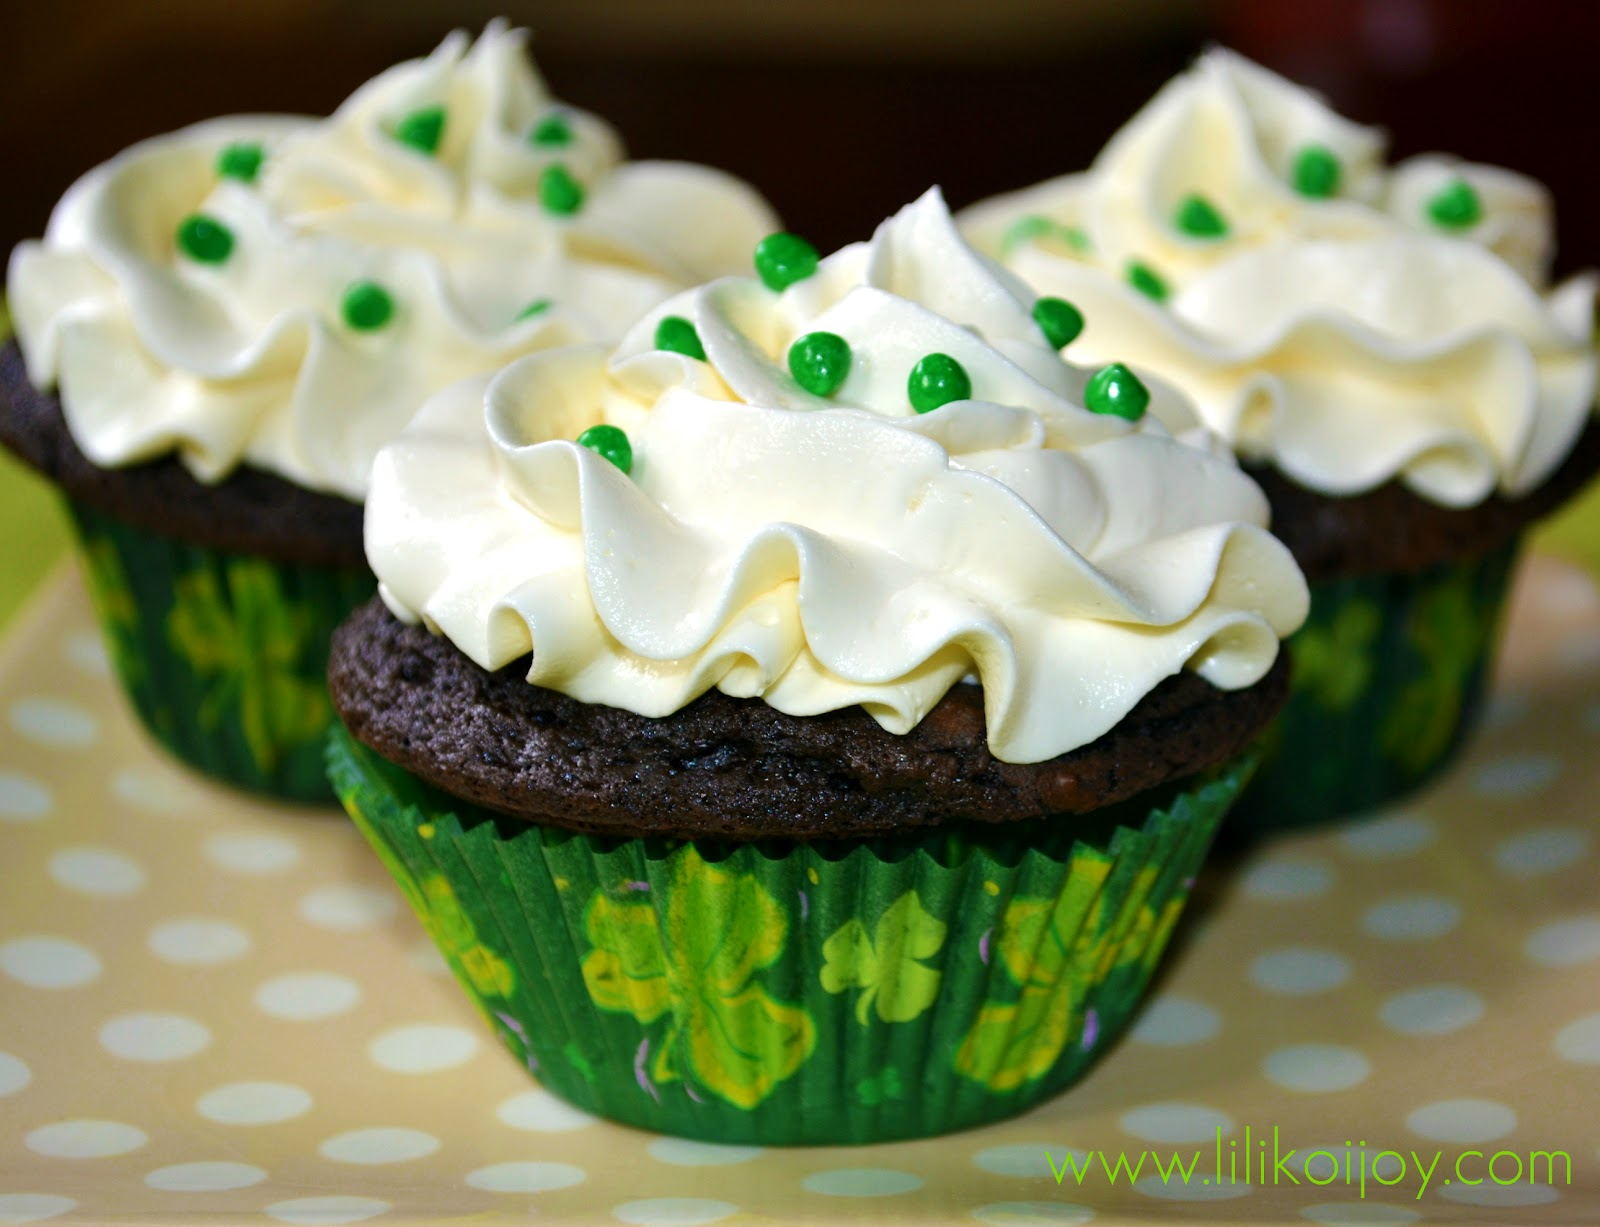 Dark-Chocolate Mint Cupcakes With White-Chocolate Mint Frosting Recipe ...